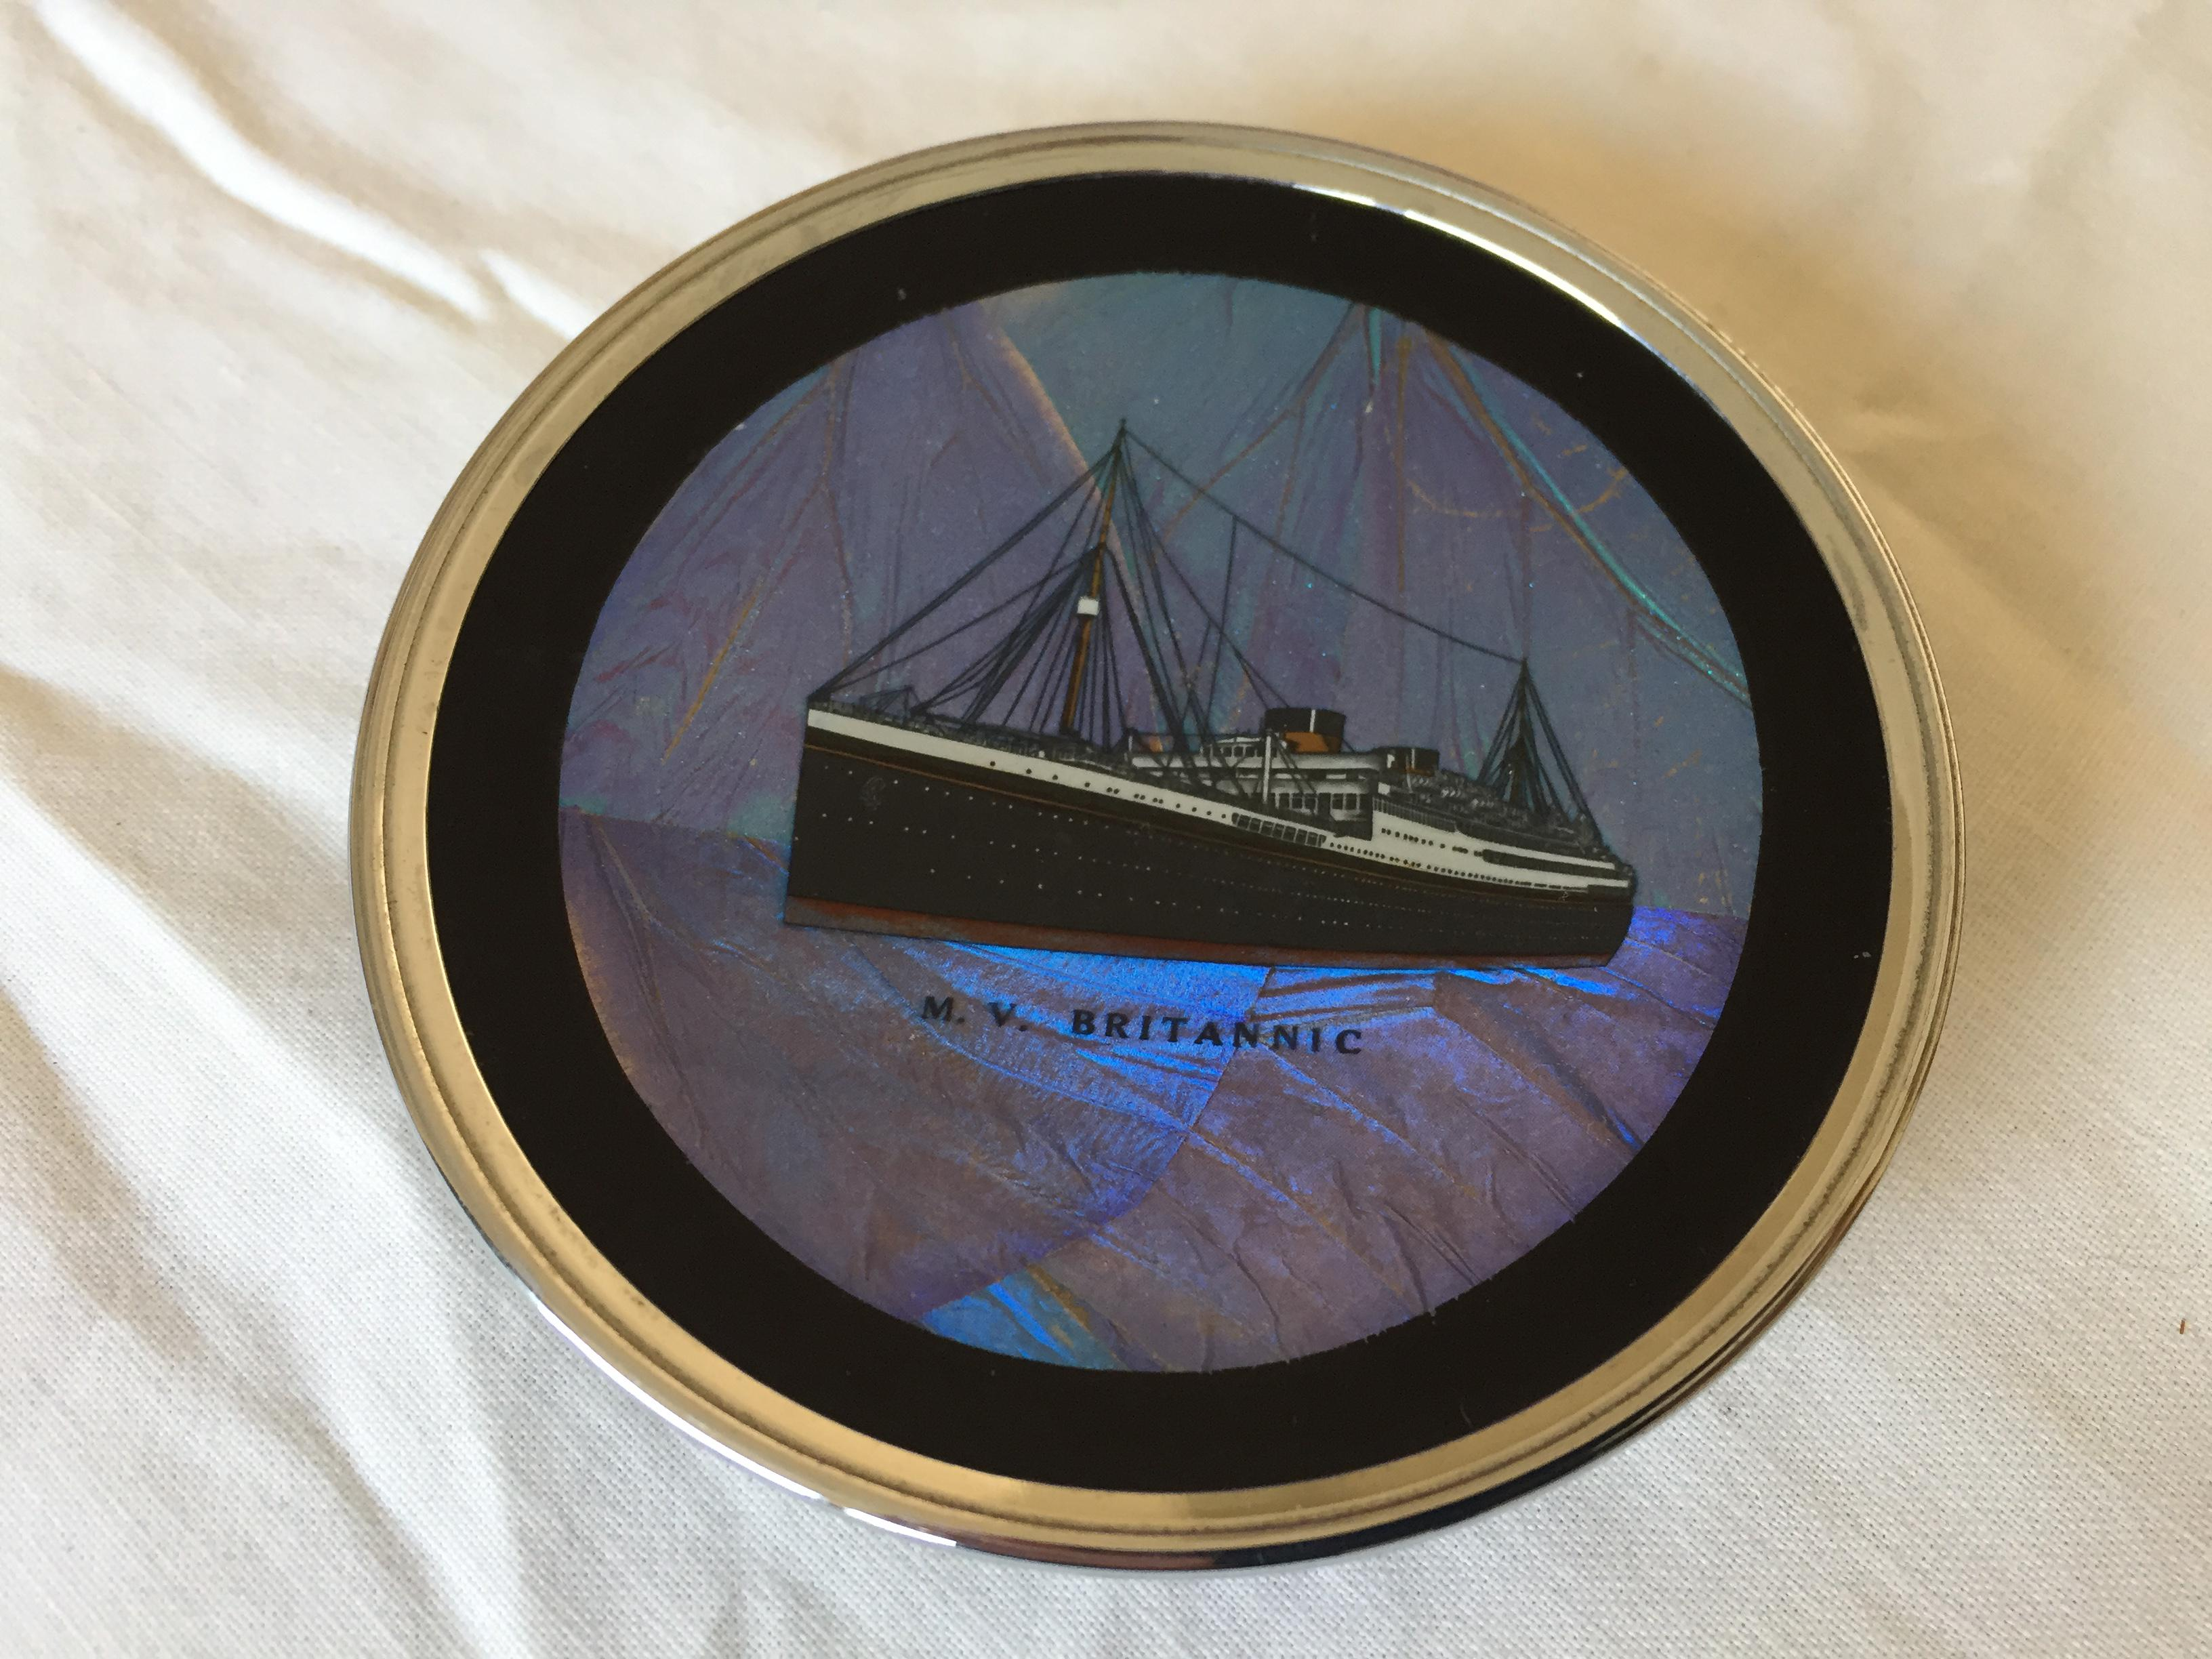 VERY RARE FIND OF A SOUVENIR DISH FROM THE WHITE STAR LINE VESSEL THE BRITANNIC